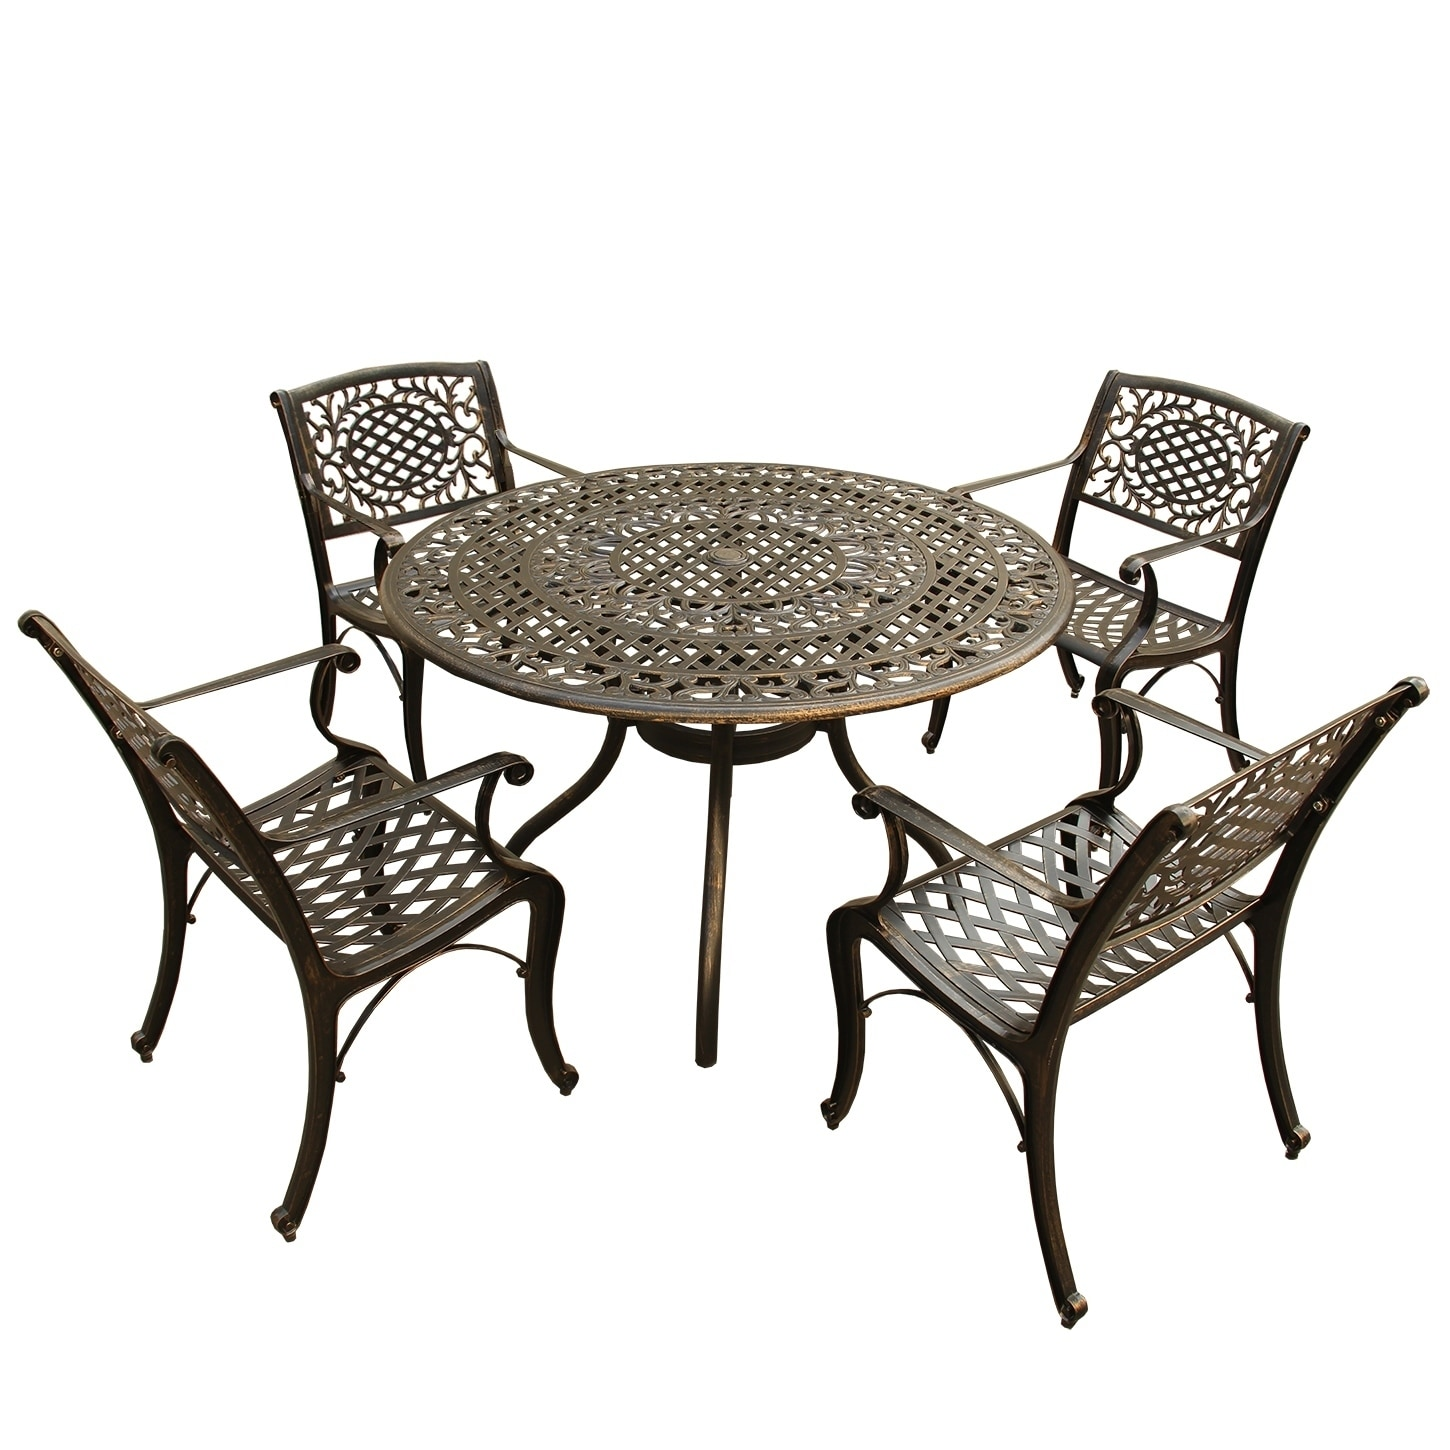 Awesome Outdoor Mesh Lattice 48 Inch Bronze Round Dining Set With Four Chairs Gmtry Best Dining Table And Chair Ideas Images Gmtryco